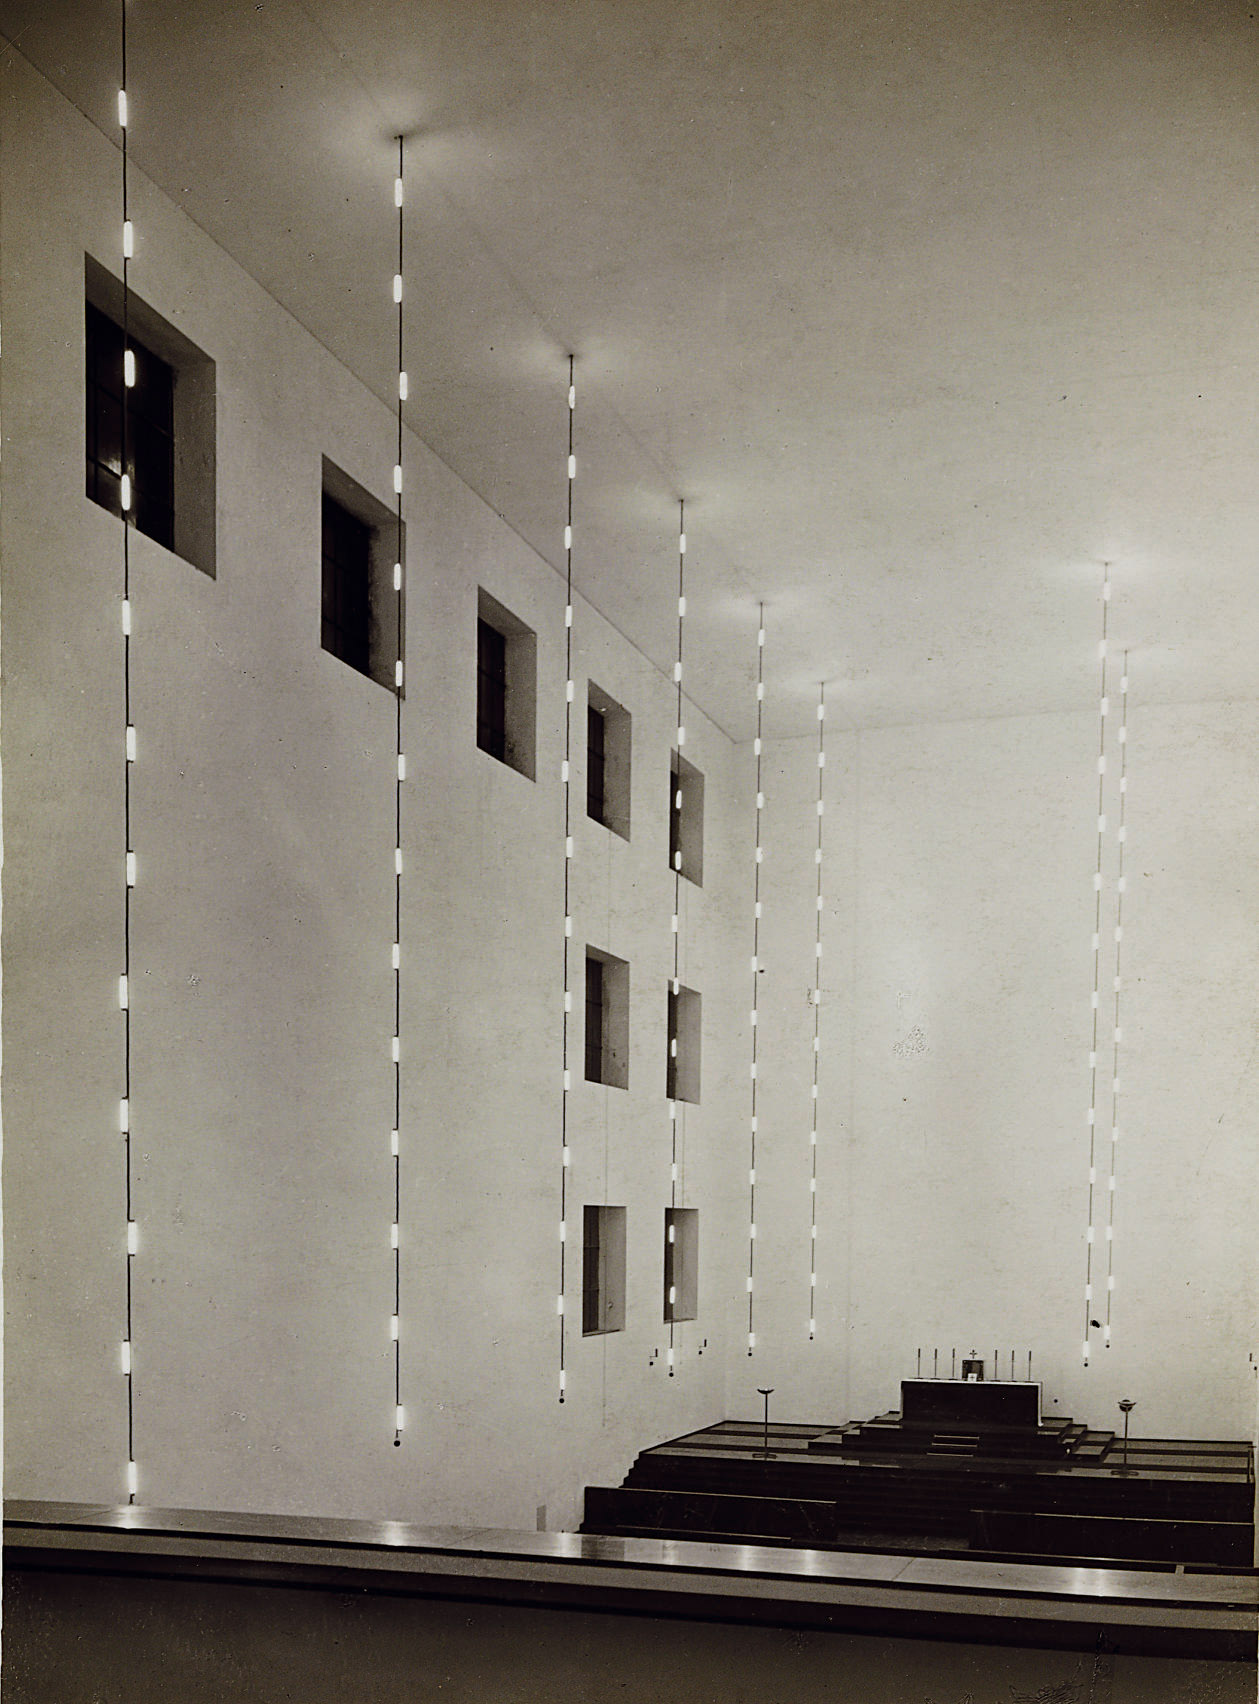 Selected architectural studies, c. 1930-1950